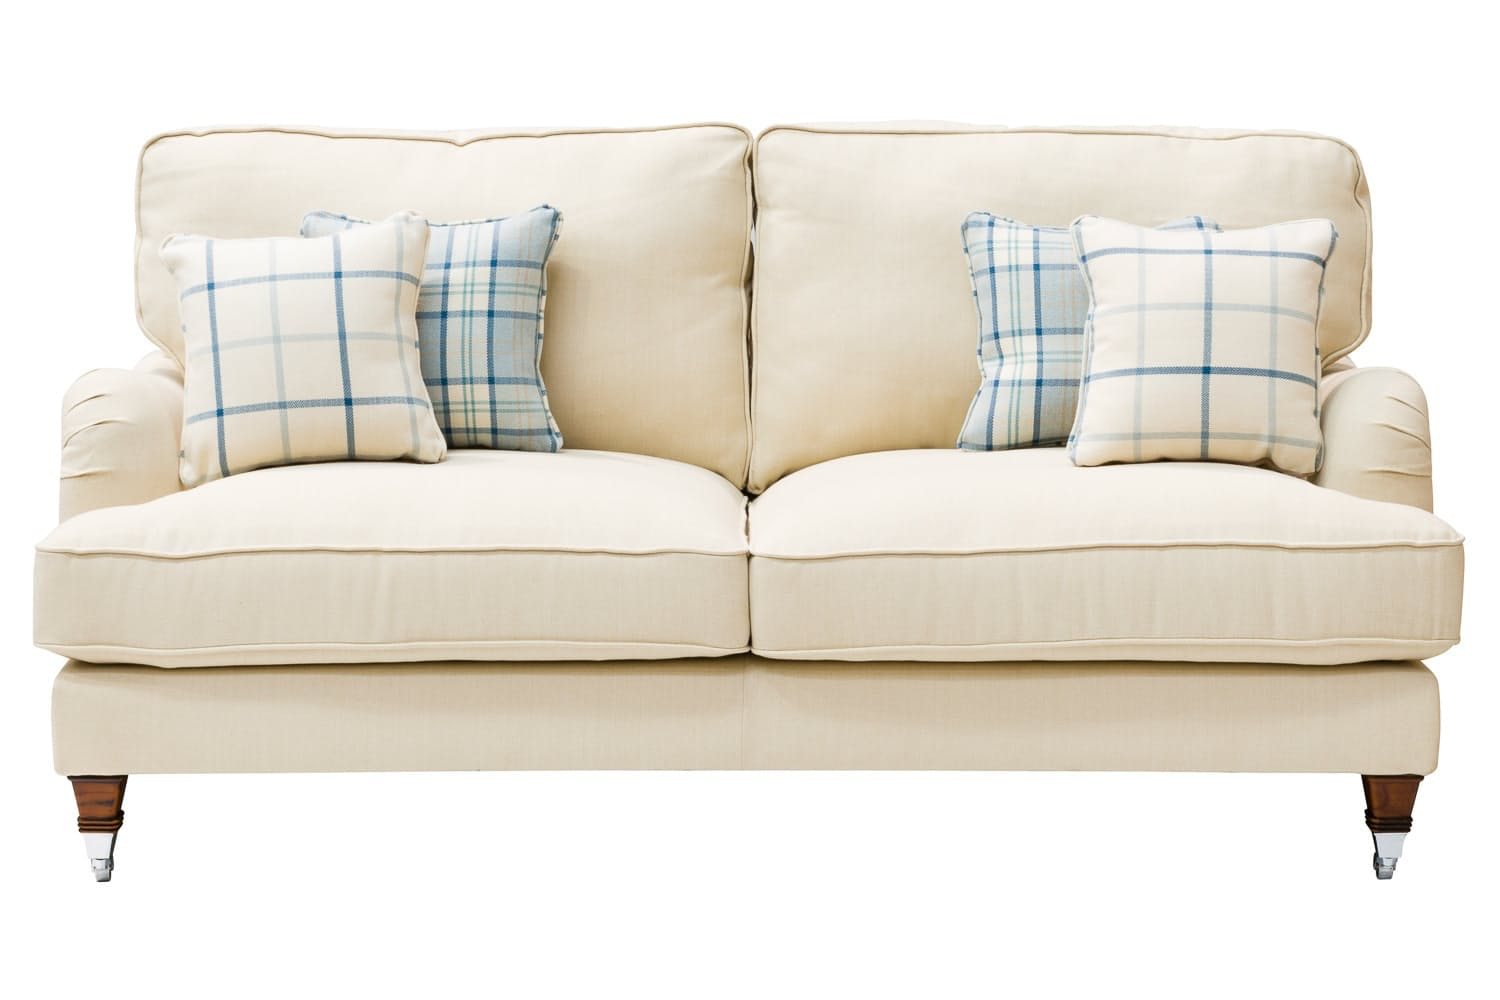 Helvick 4 Seater Sofa | 16 Fabric Options